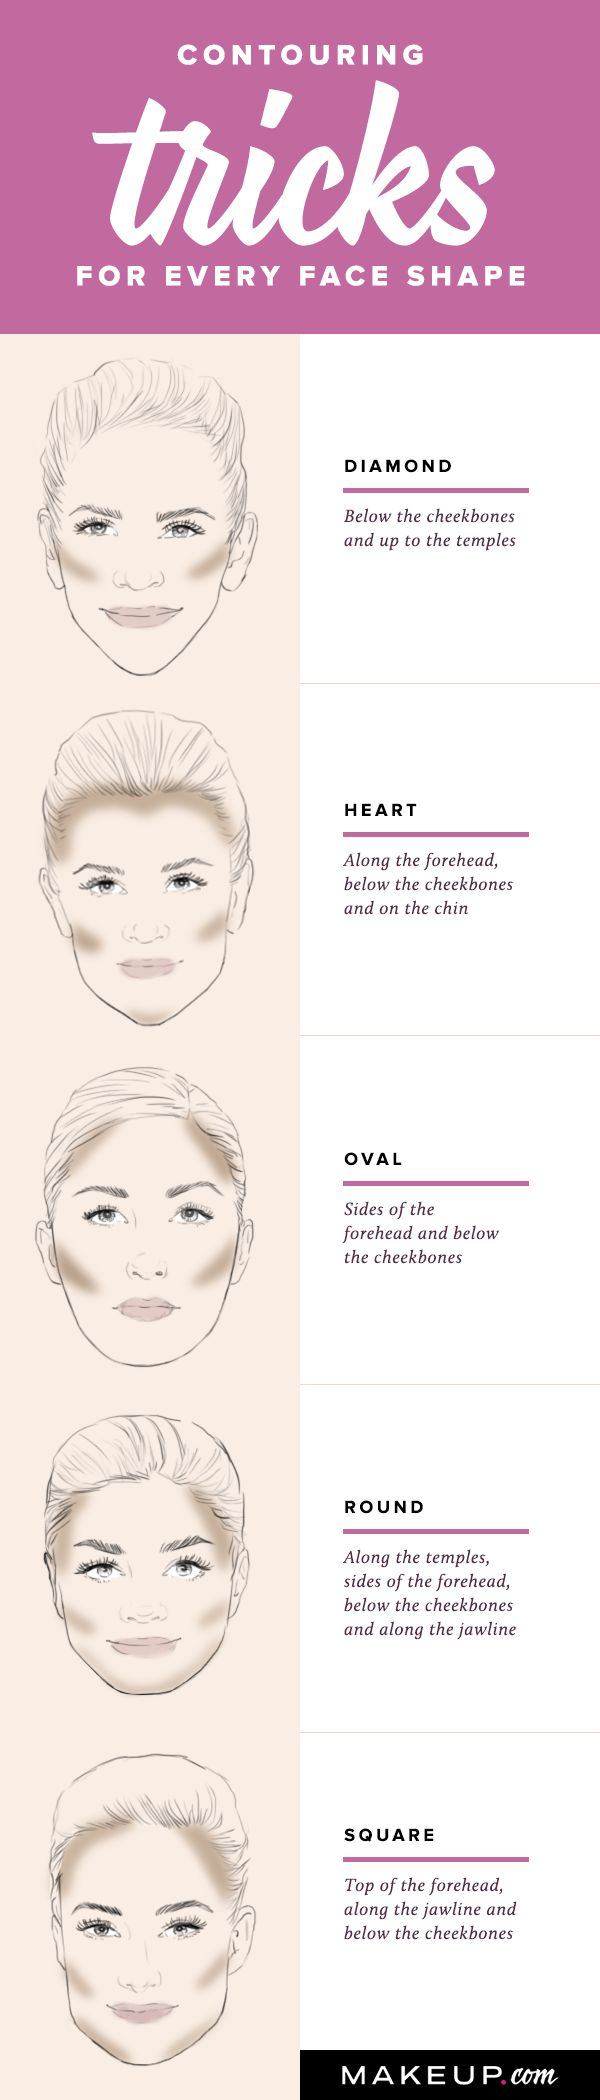 Contouring is easy if you follow this guide for how to contour according to your face shape. Follow along and give the makeup technique a try now.